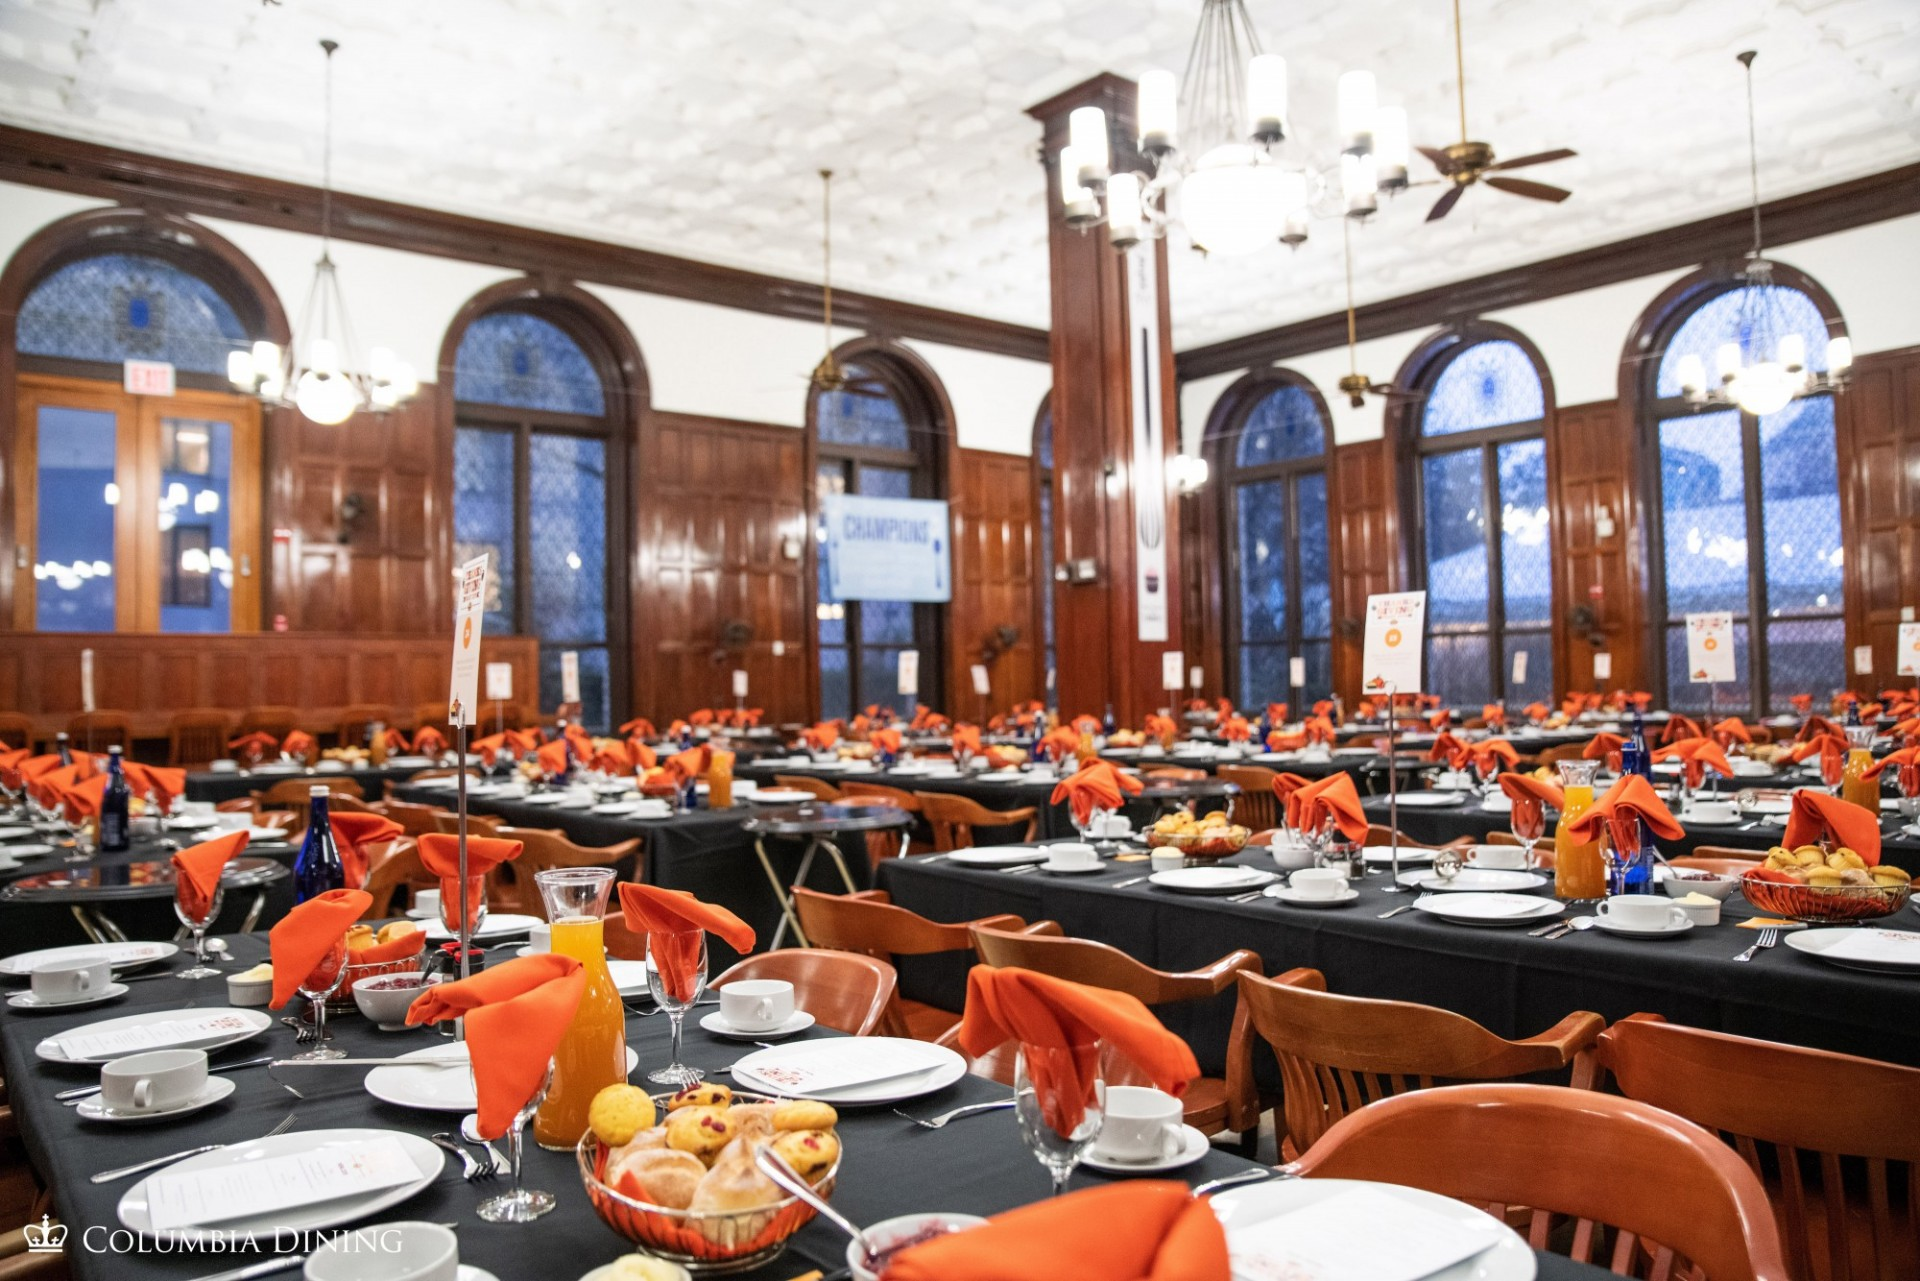 John Jay Dining Hall set for the annual Thanksgiving Feast